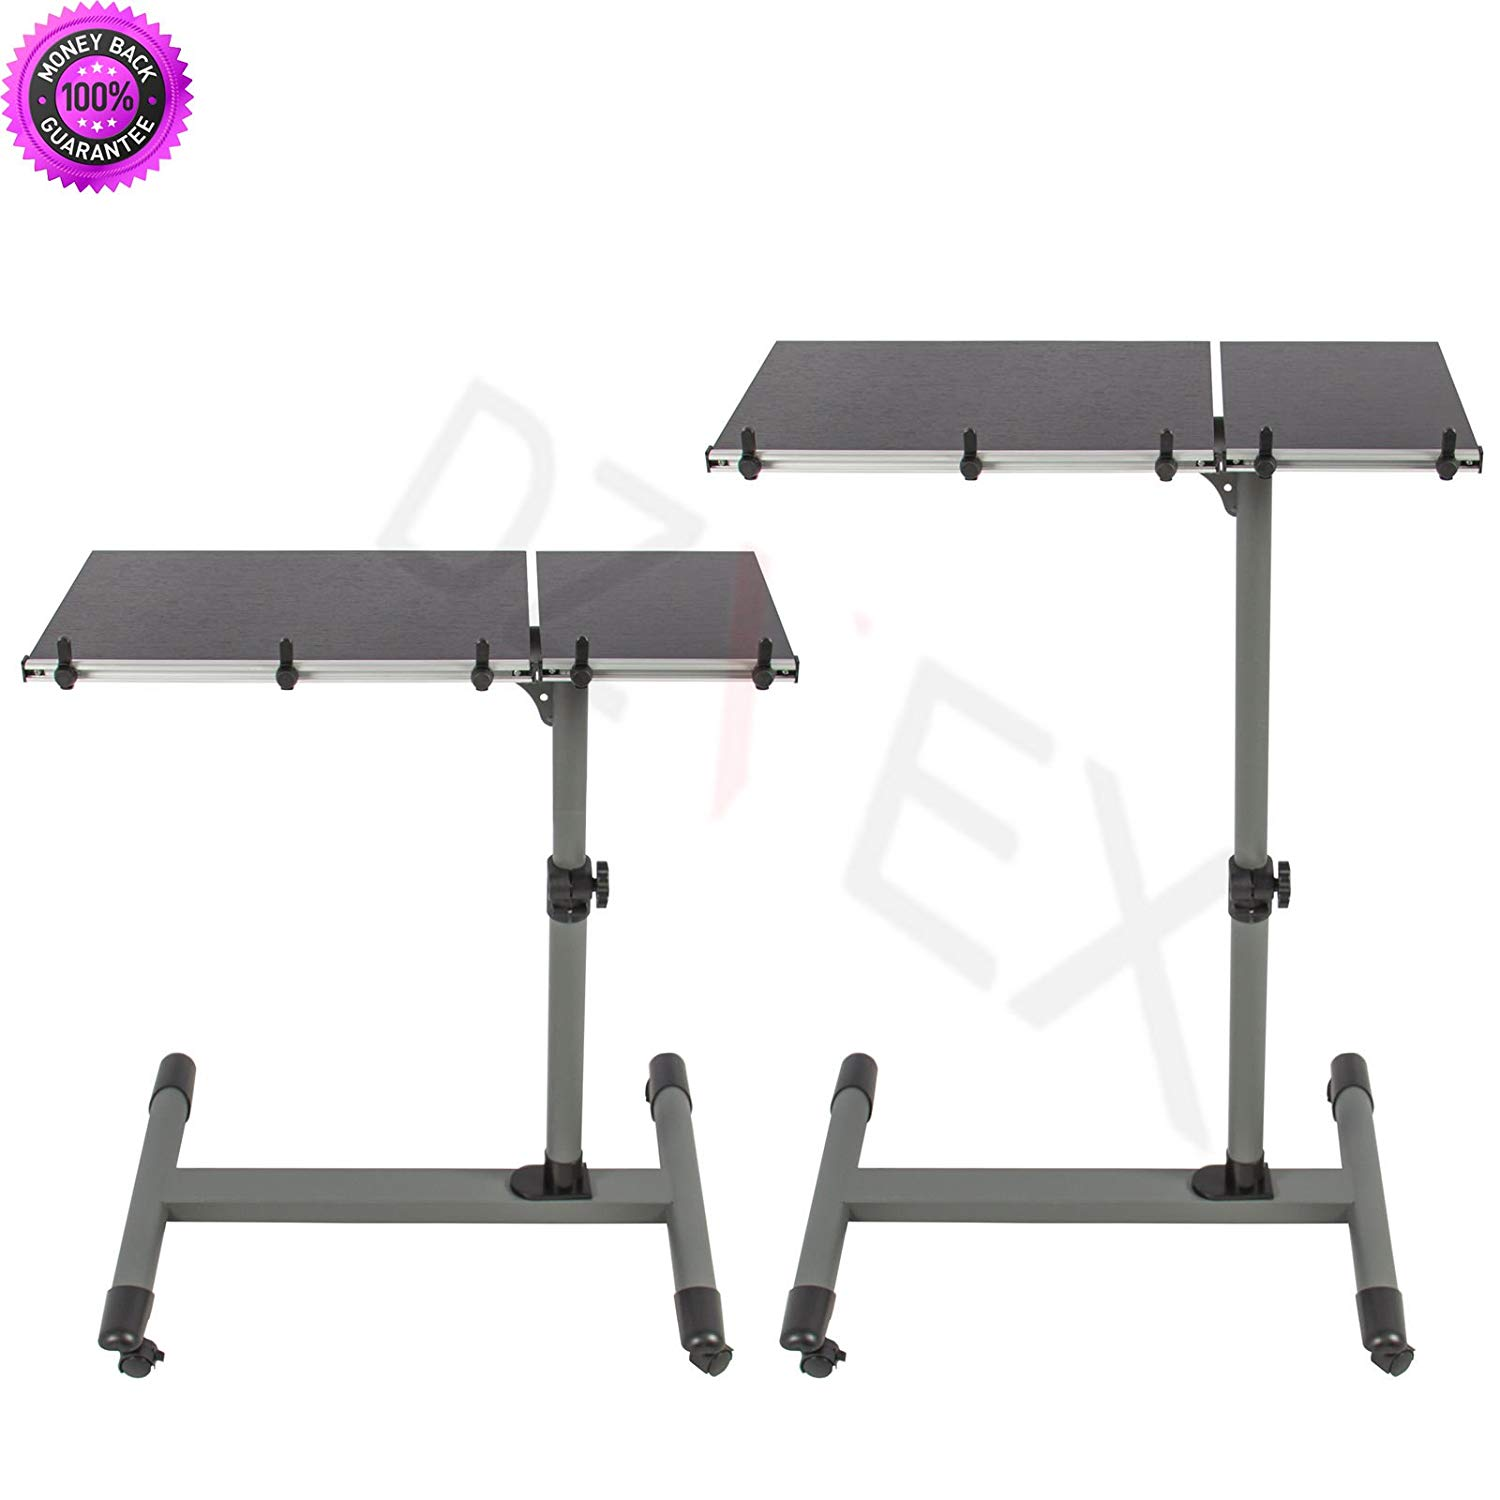 DzVeX__Rolling Laptop Table W/ Tilting Tabletop Overbed Desk TV Food Tray Hospital PC And office furniture stores near me executive office furniture small home office furniture sets modern office